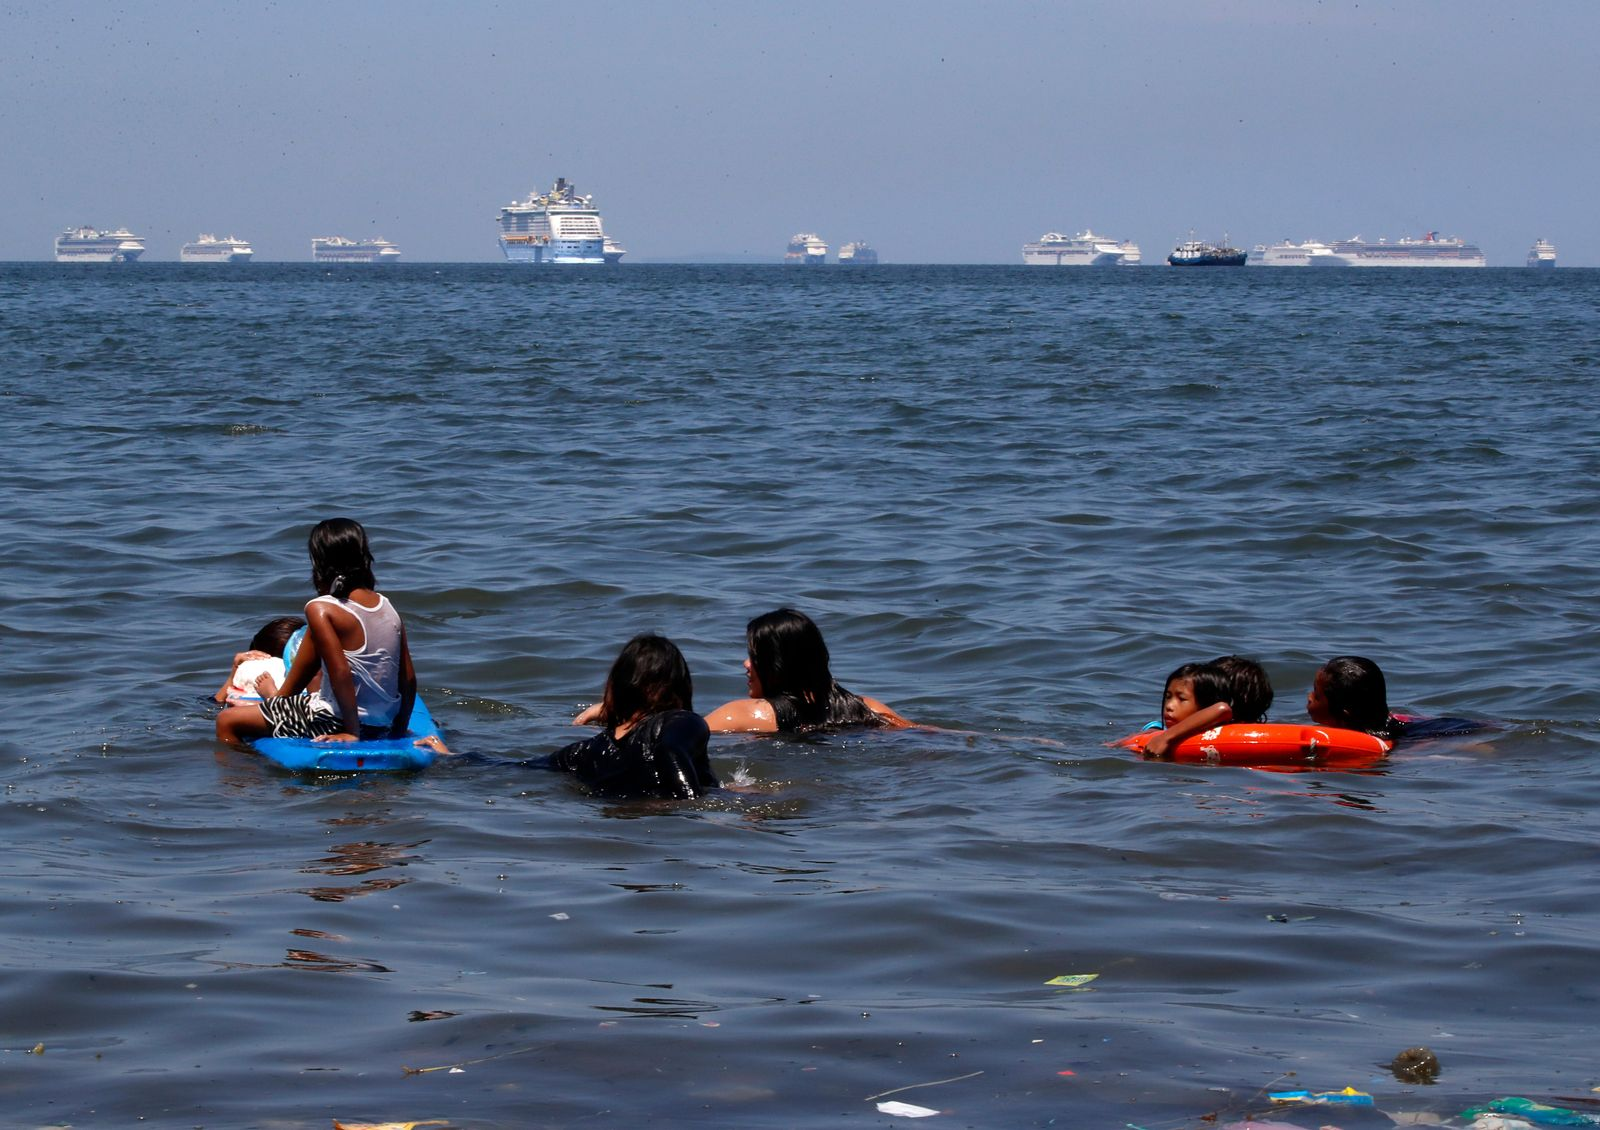 Cruise ships anchored in Manila Bay for medical quarantine, Philippines - 08 May 2020